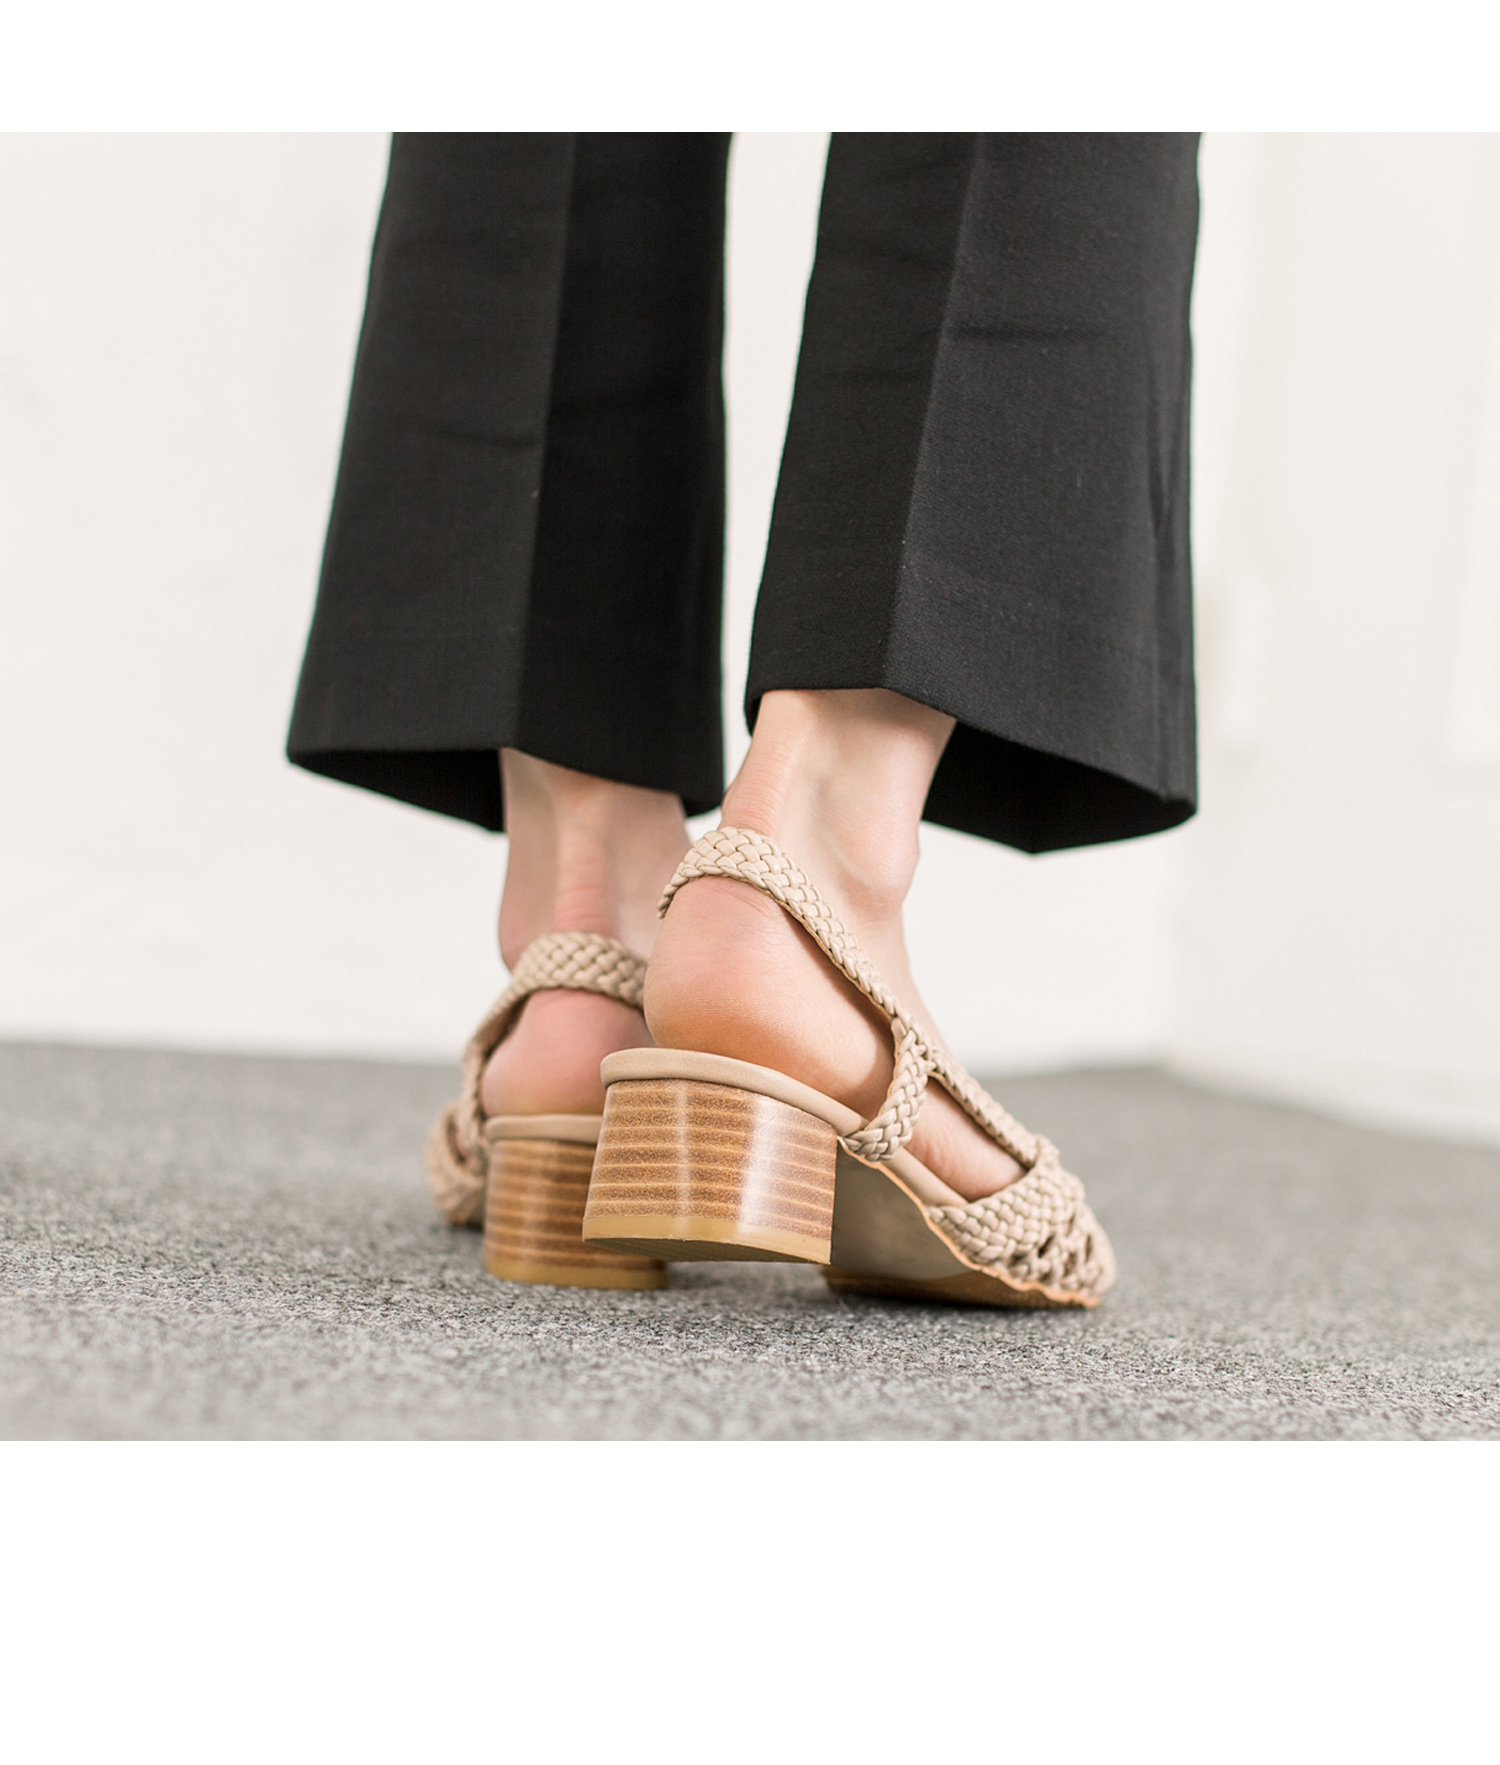 03ccbcf055226 ... Yeviavy Feet  AnnaKastle Womens Leather Braided Woven Slingback Sandals  Beige factory outlets cd145 86539 ...